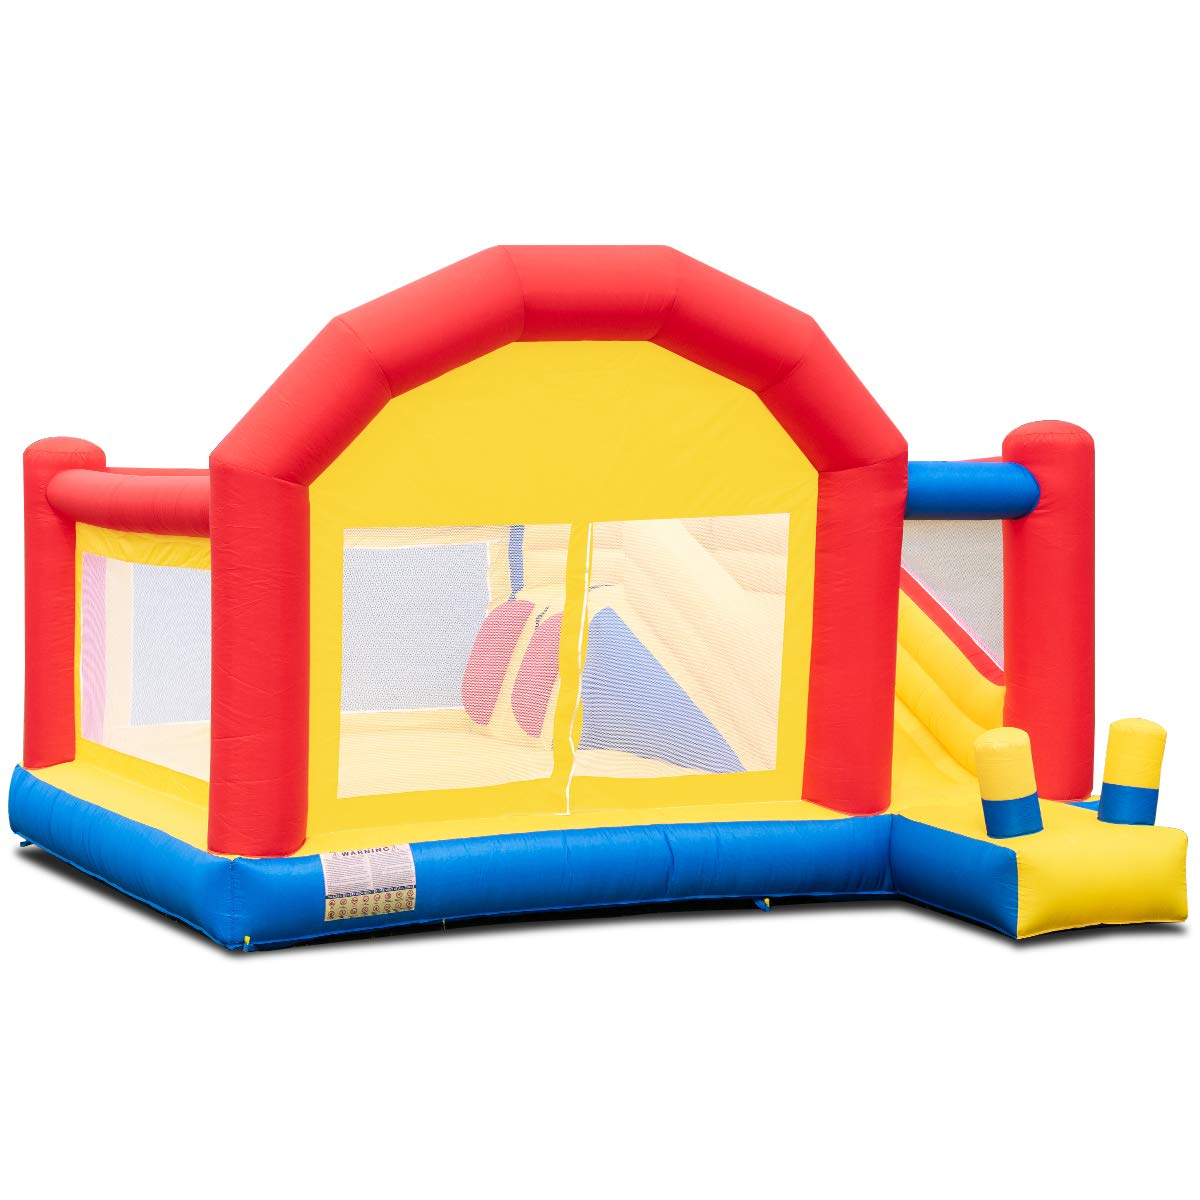 Costzon Kid Bounce House, Inflatable Slide Bouncer Outside Castle Bounce Jumper Without Blower by Costzon (Image #1)